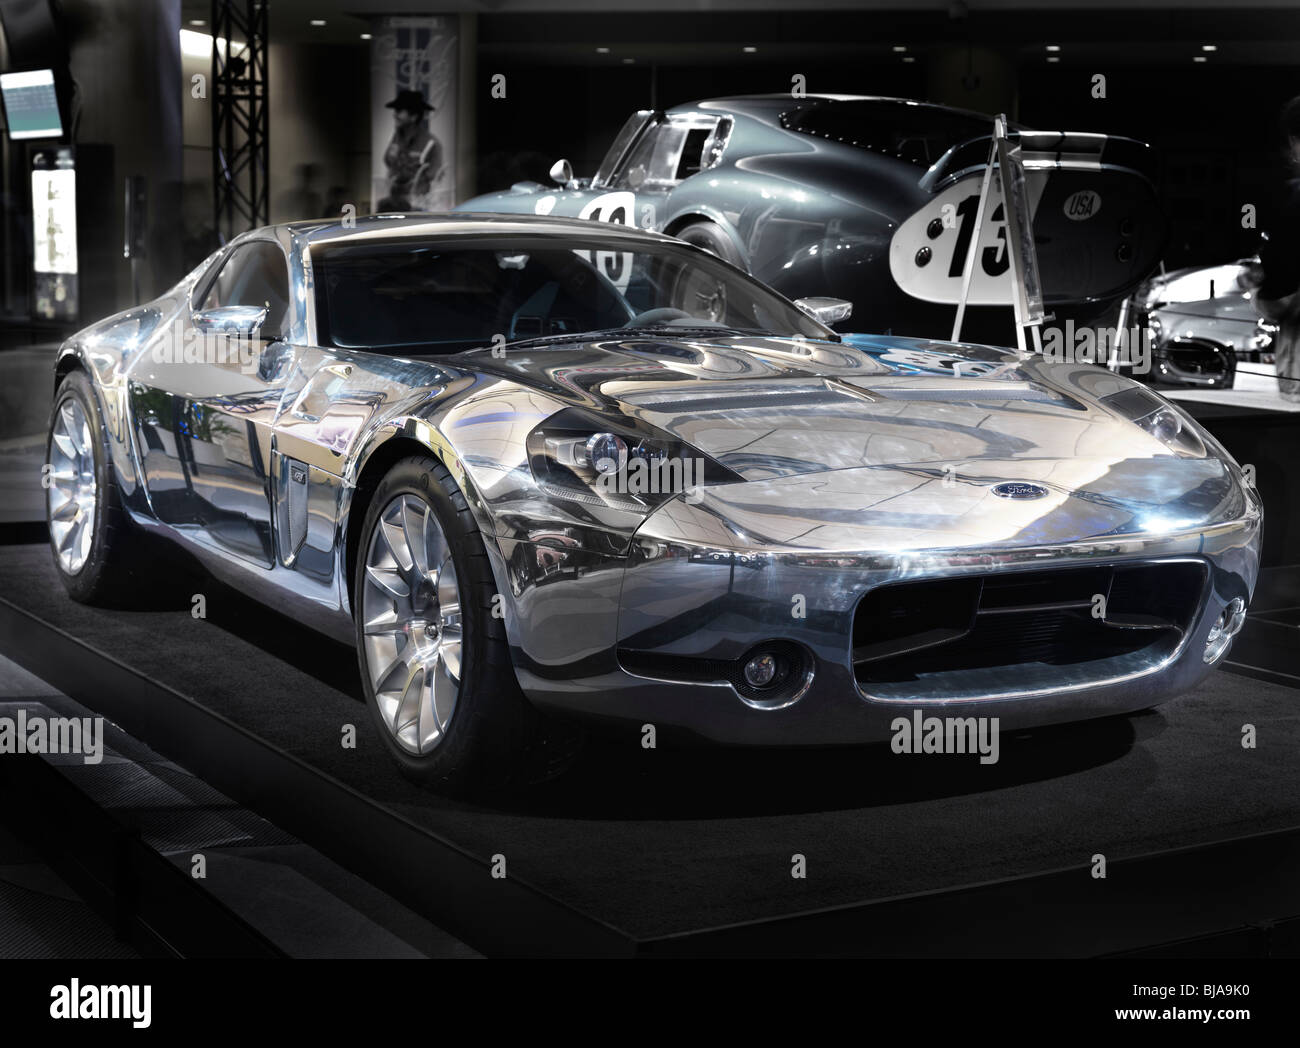 Ford Shelby GR-1 Coupe with shiny aluminum body at Canadian international auto show - Stock Image